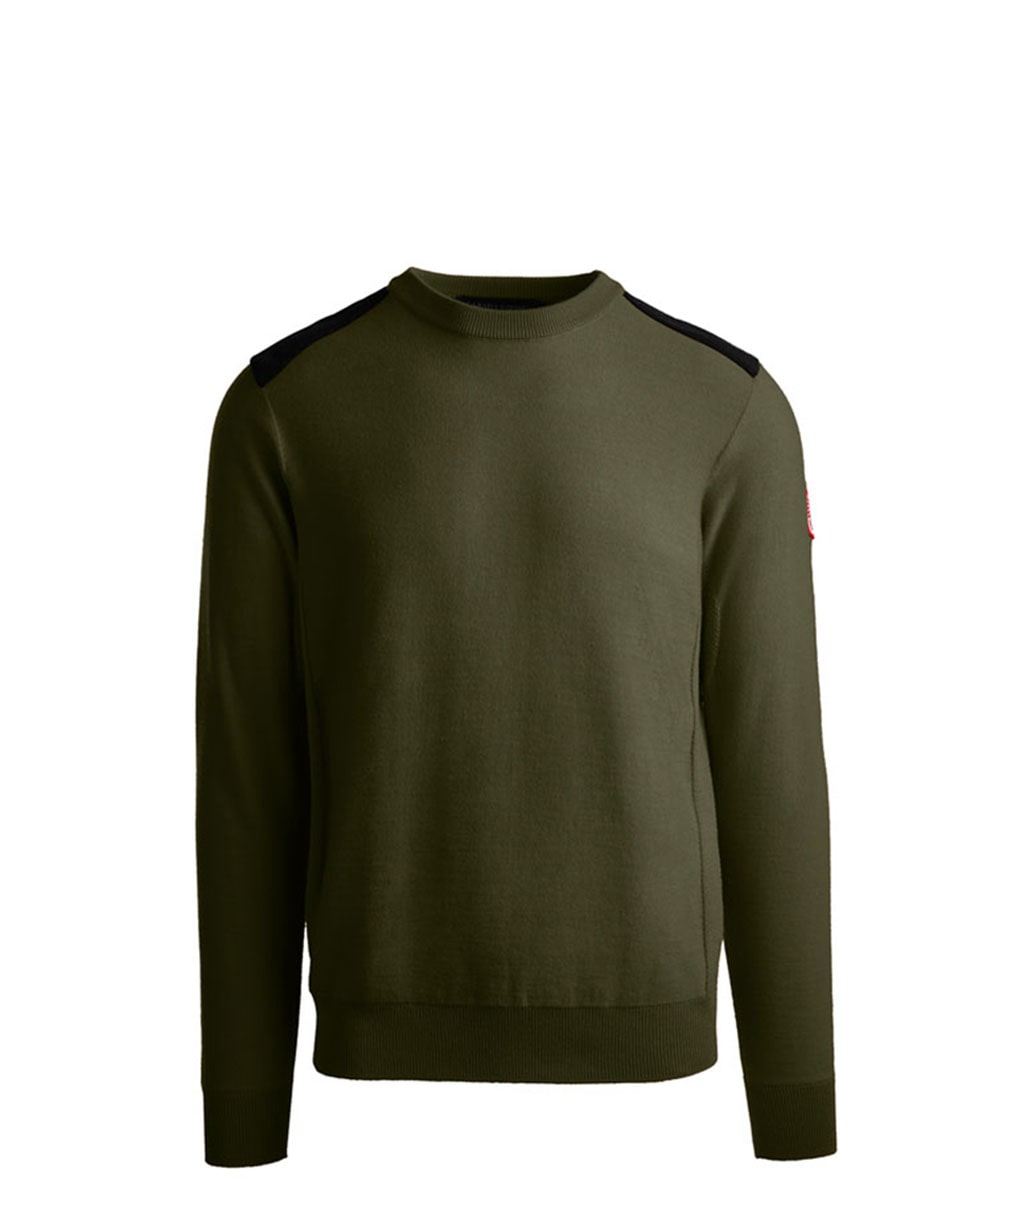 DARTMOUTH CREW NECK SWEATER